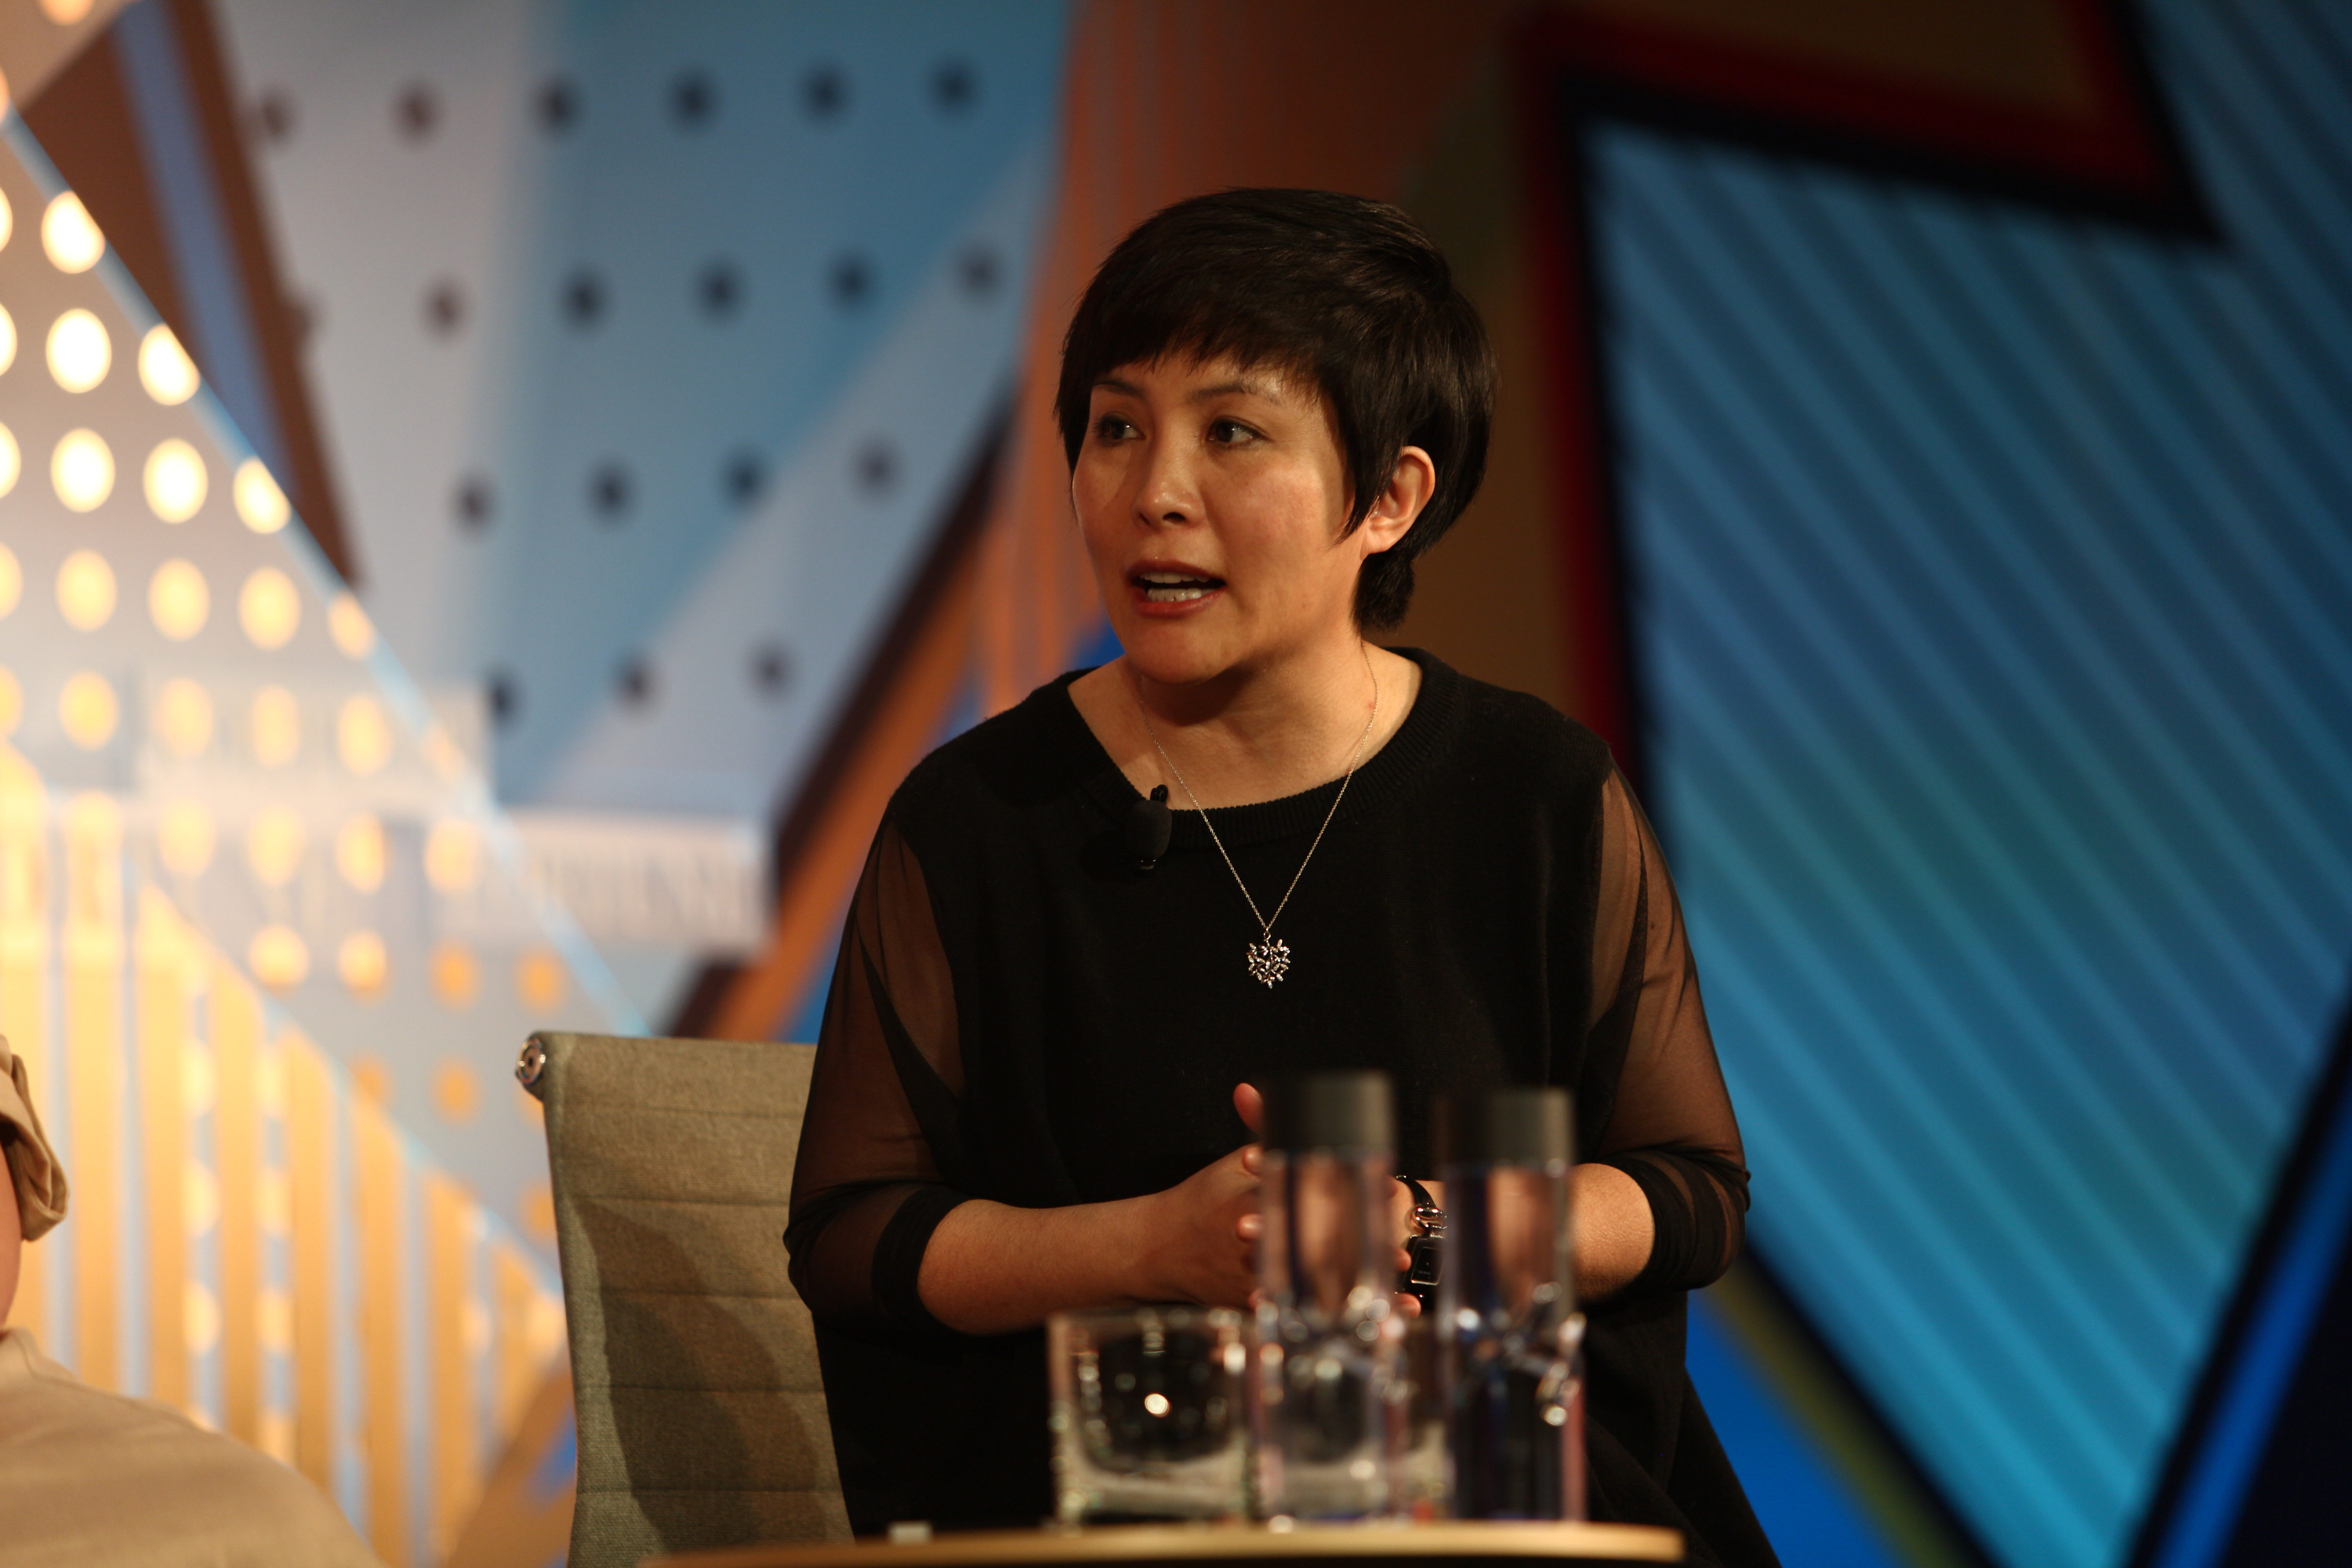 Melissa Yang of Tujia.com at Fortune's Most Powerful Women International Summit  in Hong Kong on March 1, 2016.